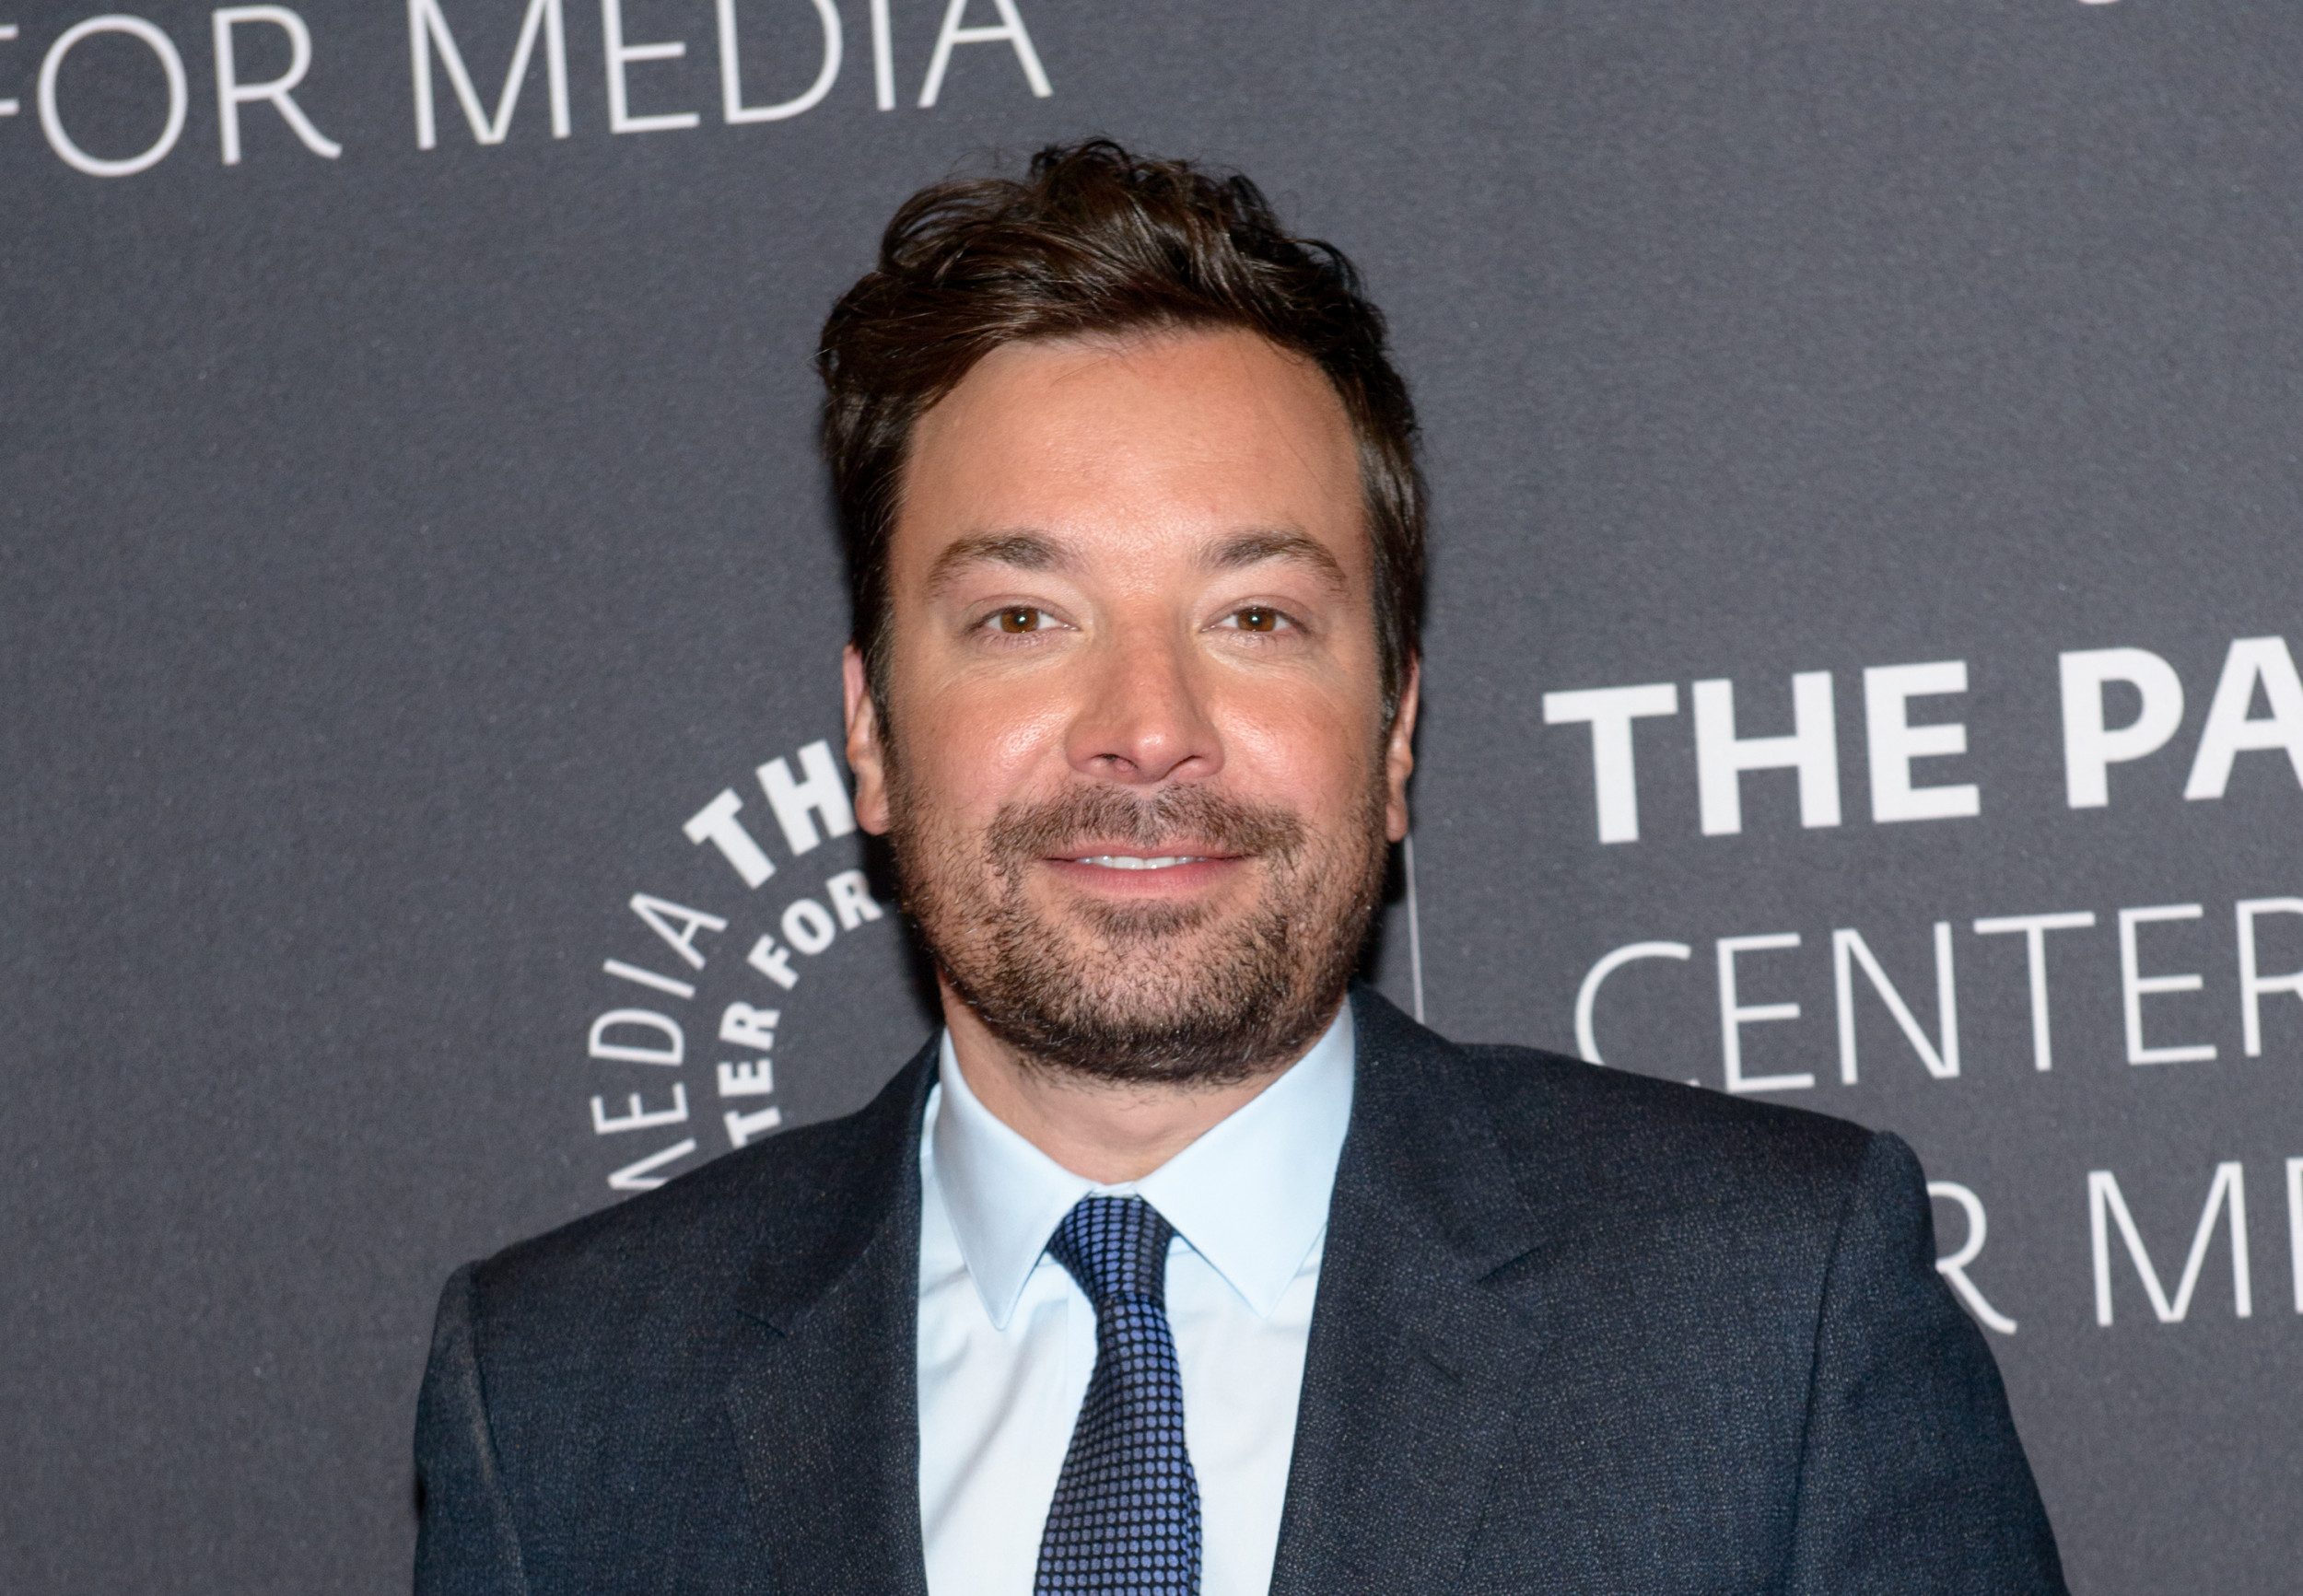 Jimmy Fallon Mocks Sidney Powell's Firing From Trump's Moral Team For 'Being Too Loopy'